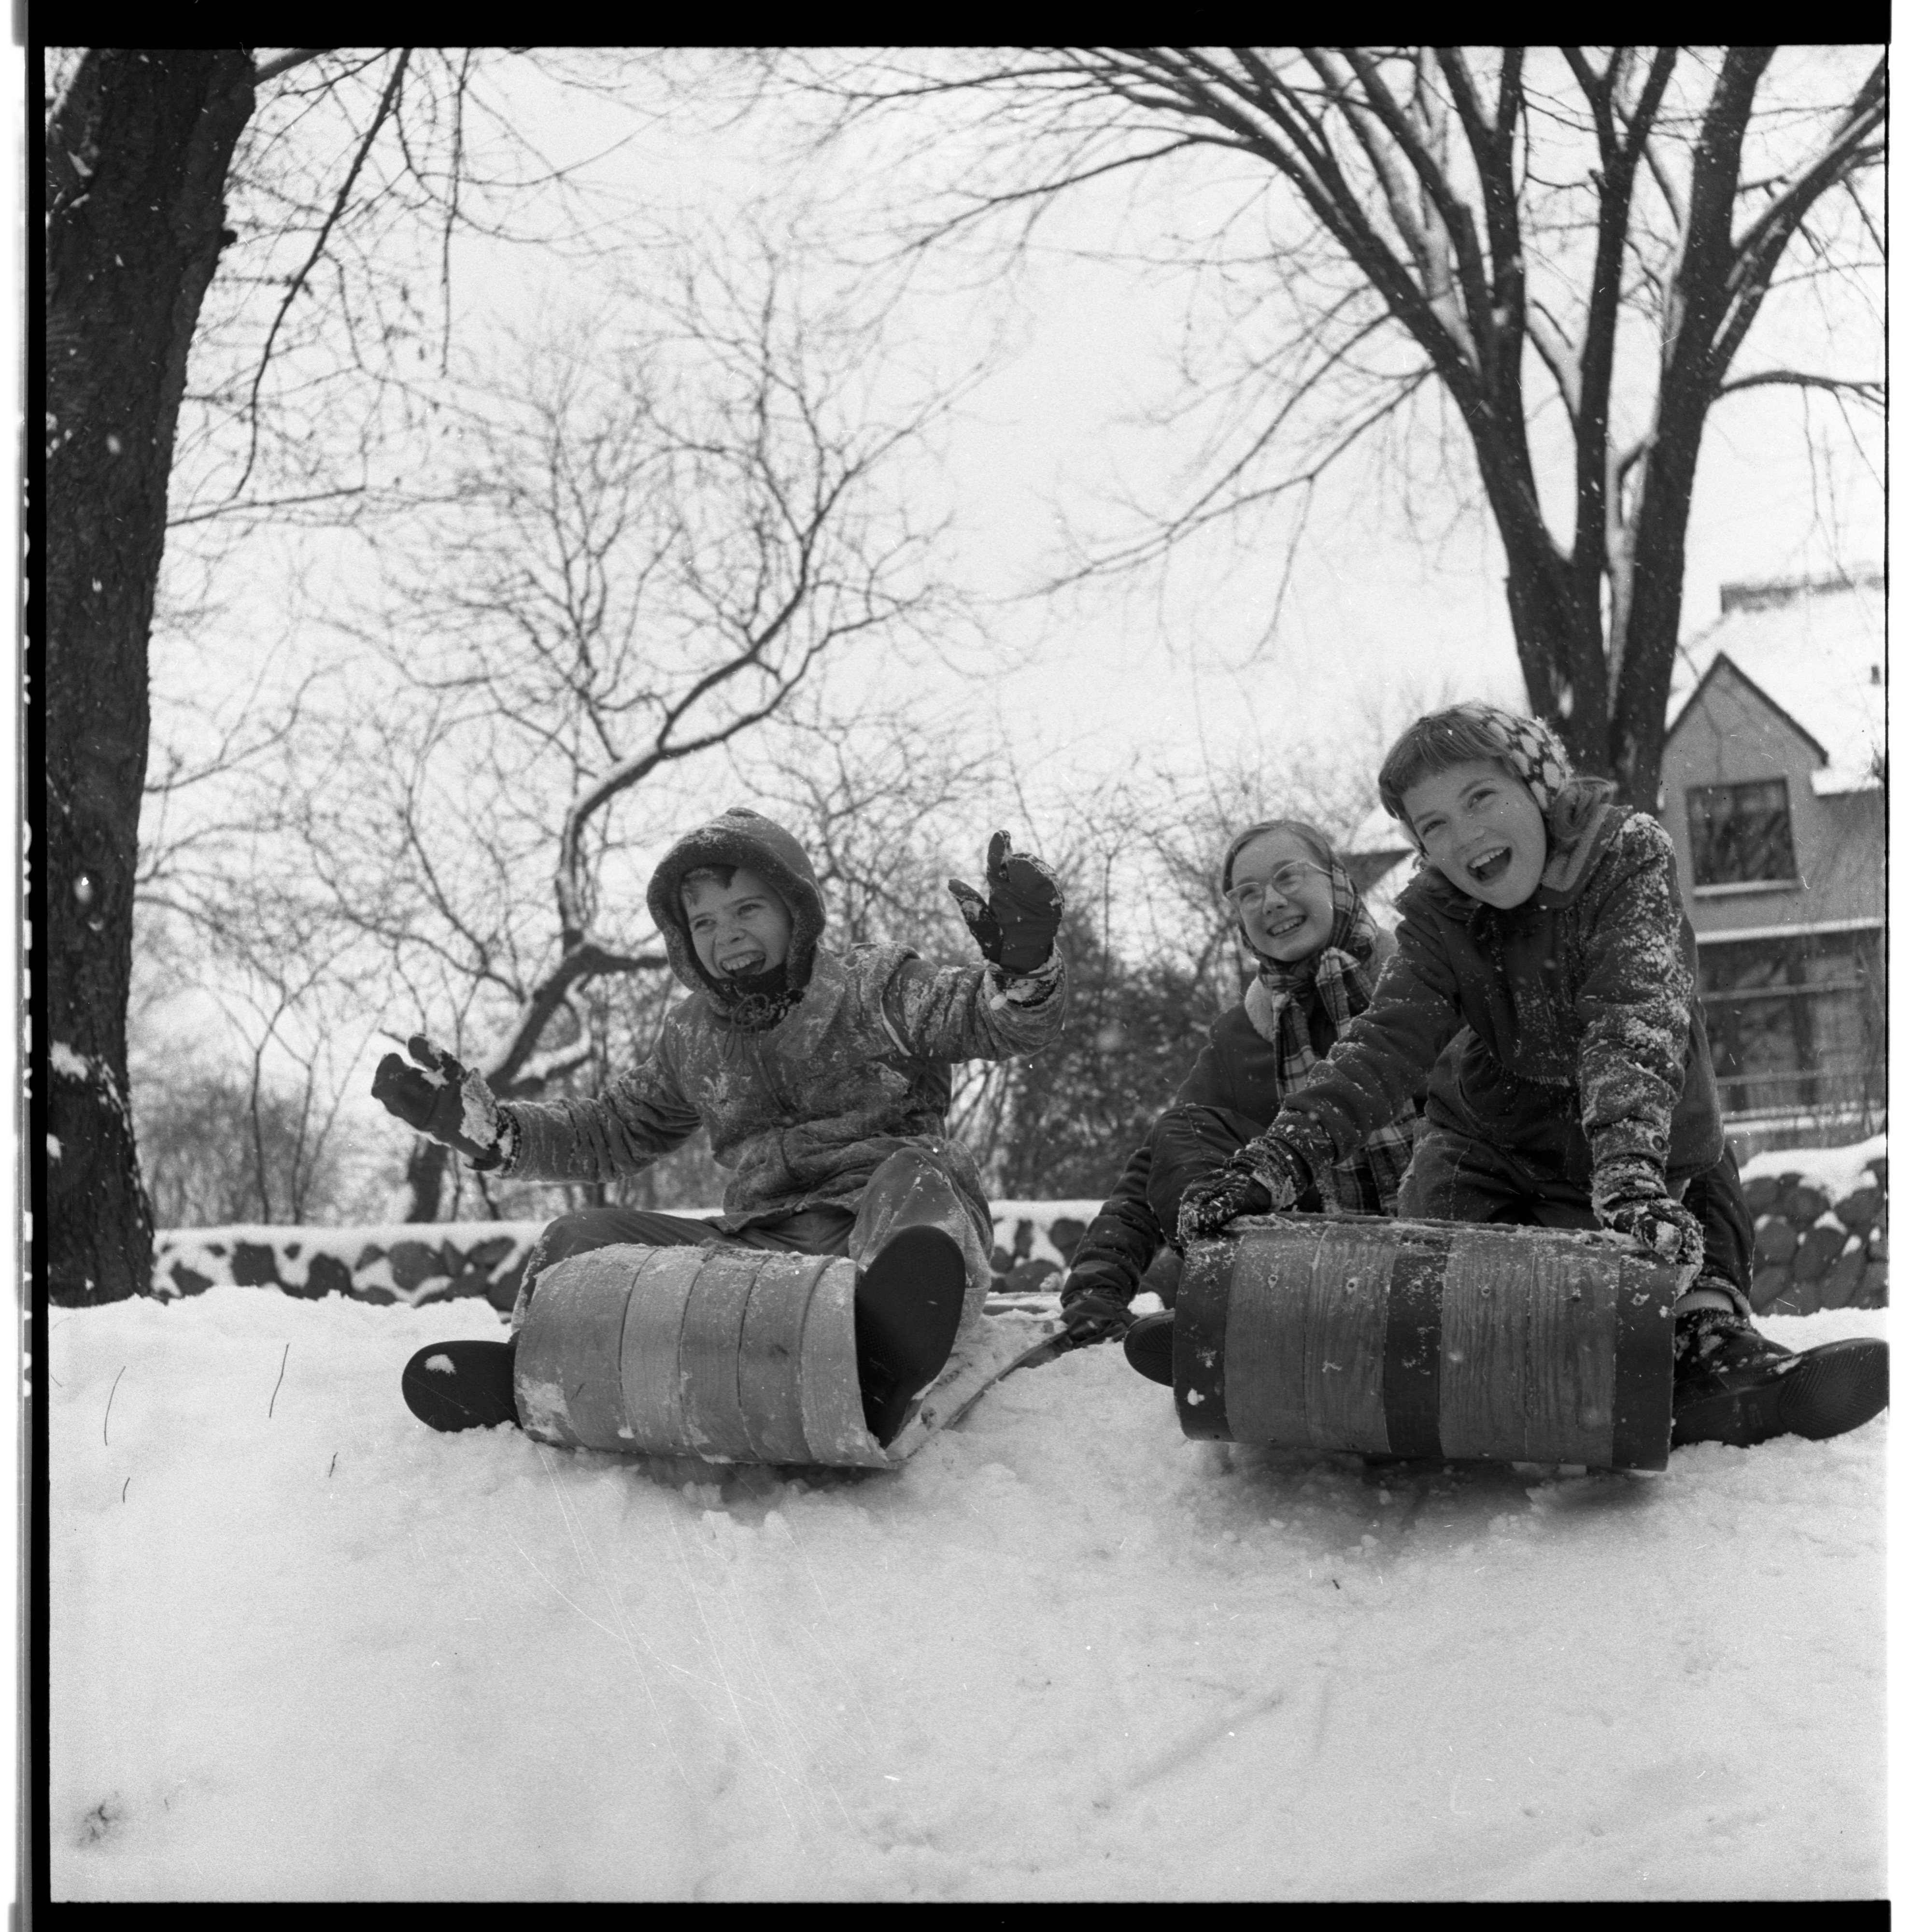 Sledding in Nichols Arboretum, January 1957 image